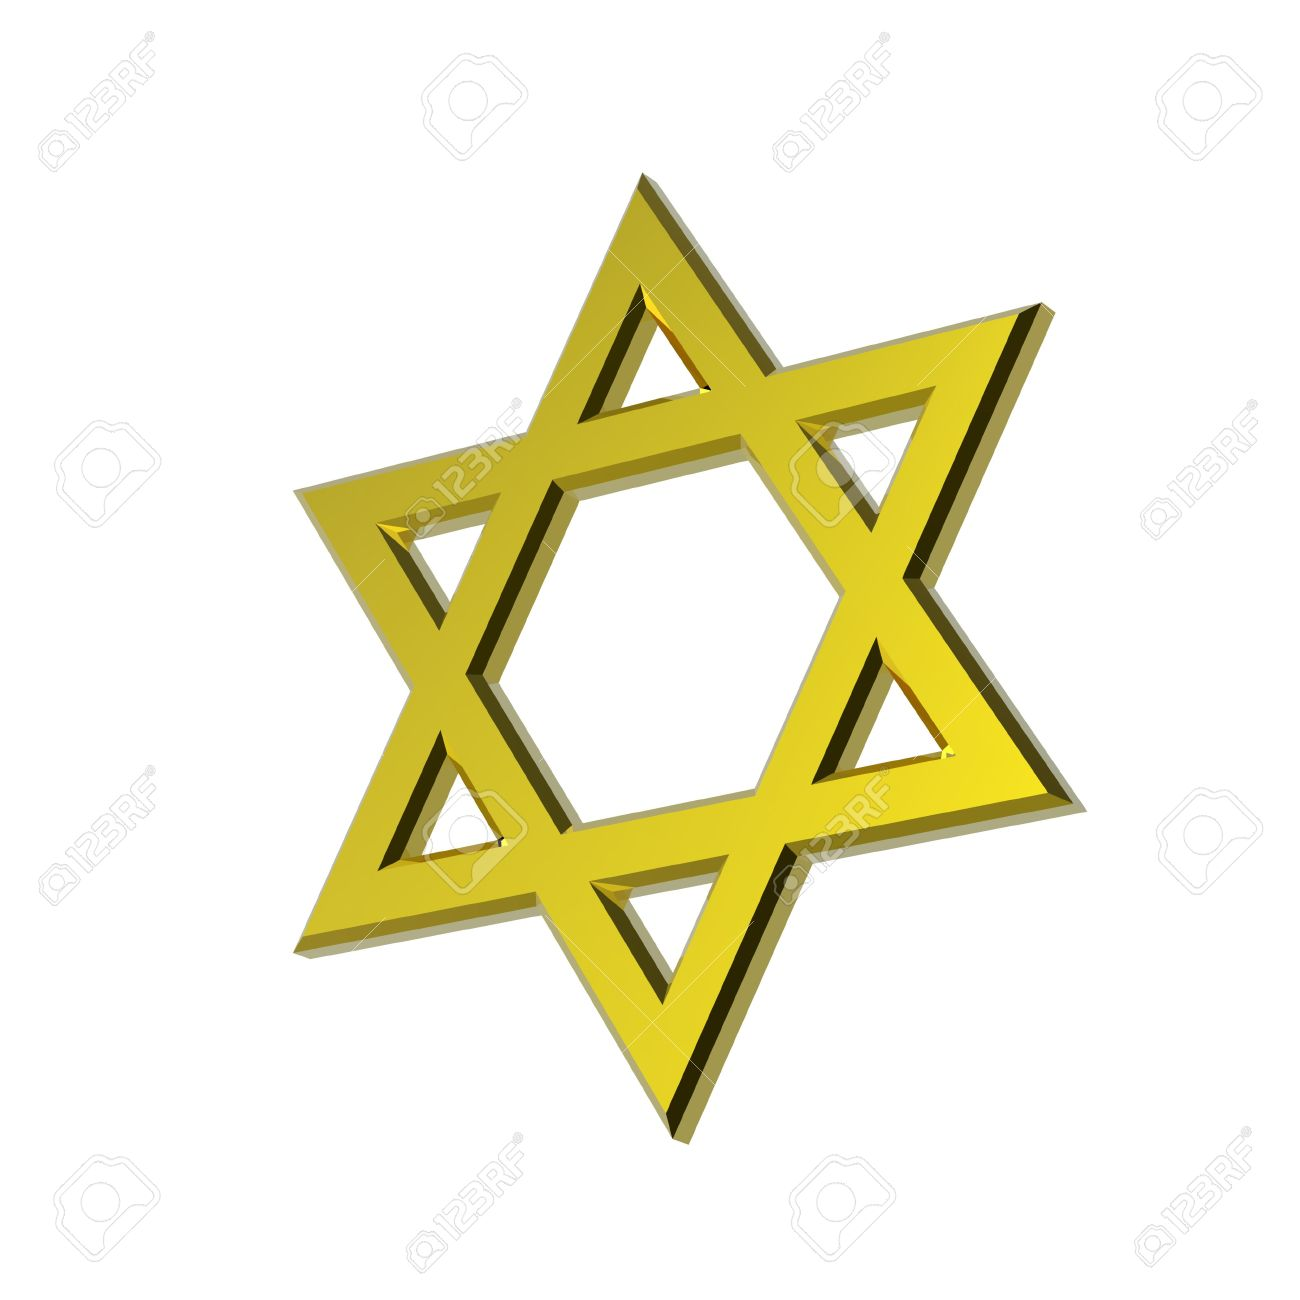 Religious symbols of judaism images symbol and sign ideas gold judaism religious symbol star of david isolated on white gold judaism religious symbol star of biocorpaavc